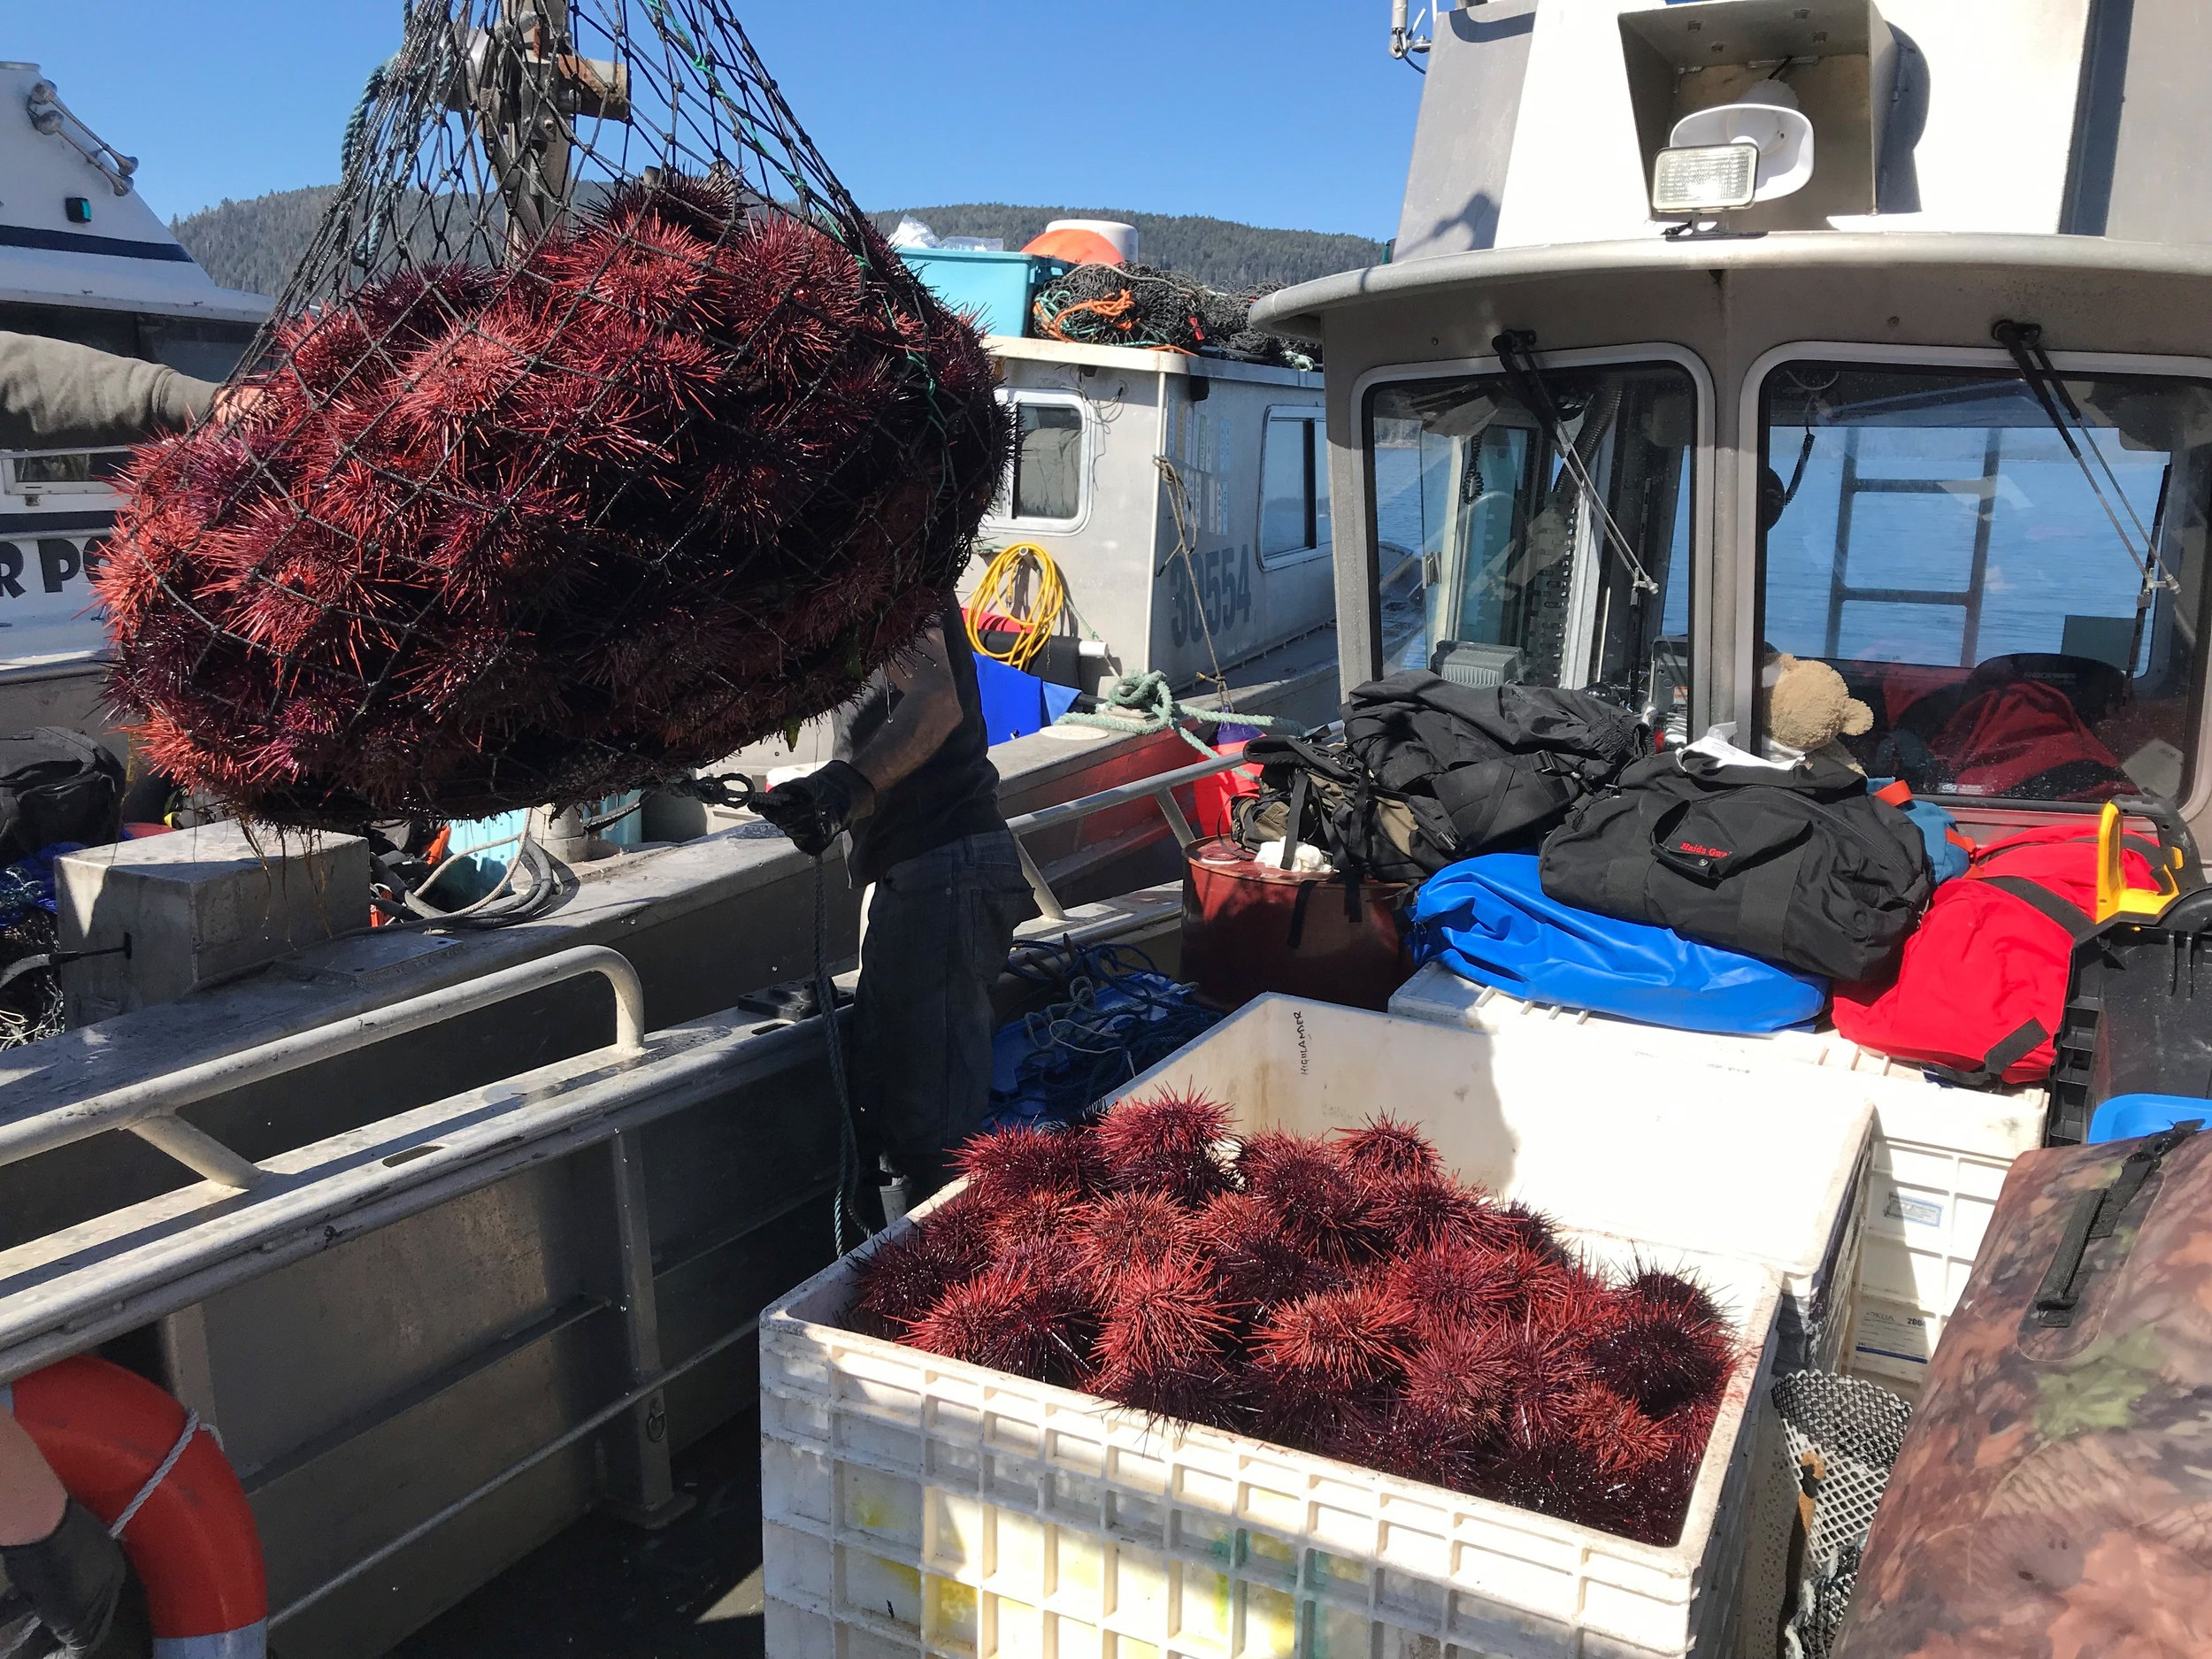 Proudly participating in the Gwaii Haanas Kelp Forest Rehabilitation Project by transporting harvested fresh Guuding.ngaay (Sea Urchin) back to town for distribution among the community.